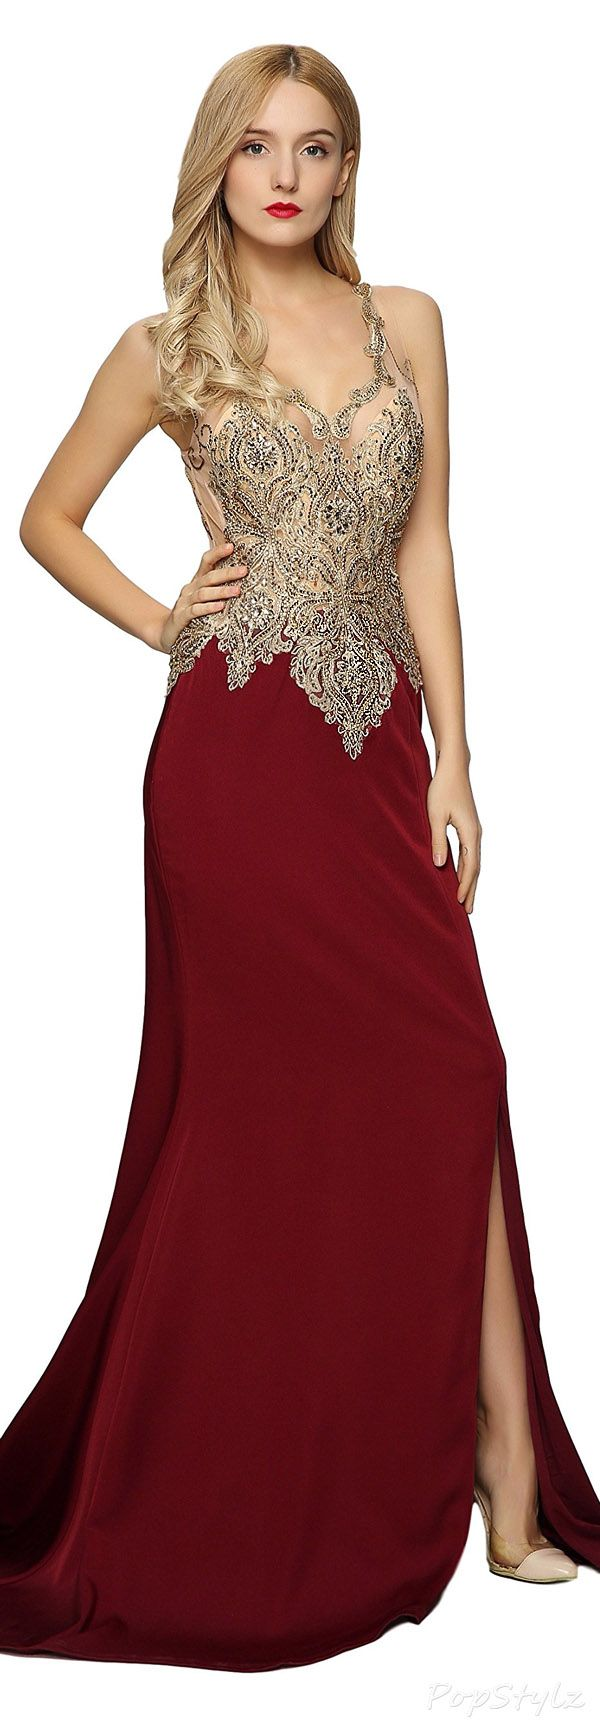 Meier Beaded Embroidered Sleeveless Evening Gown | Clothes for Gals ...